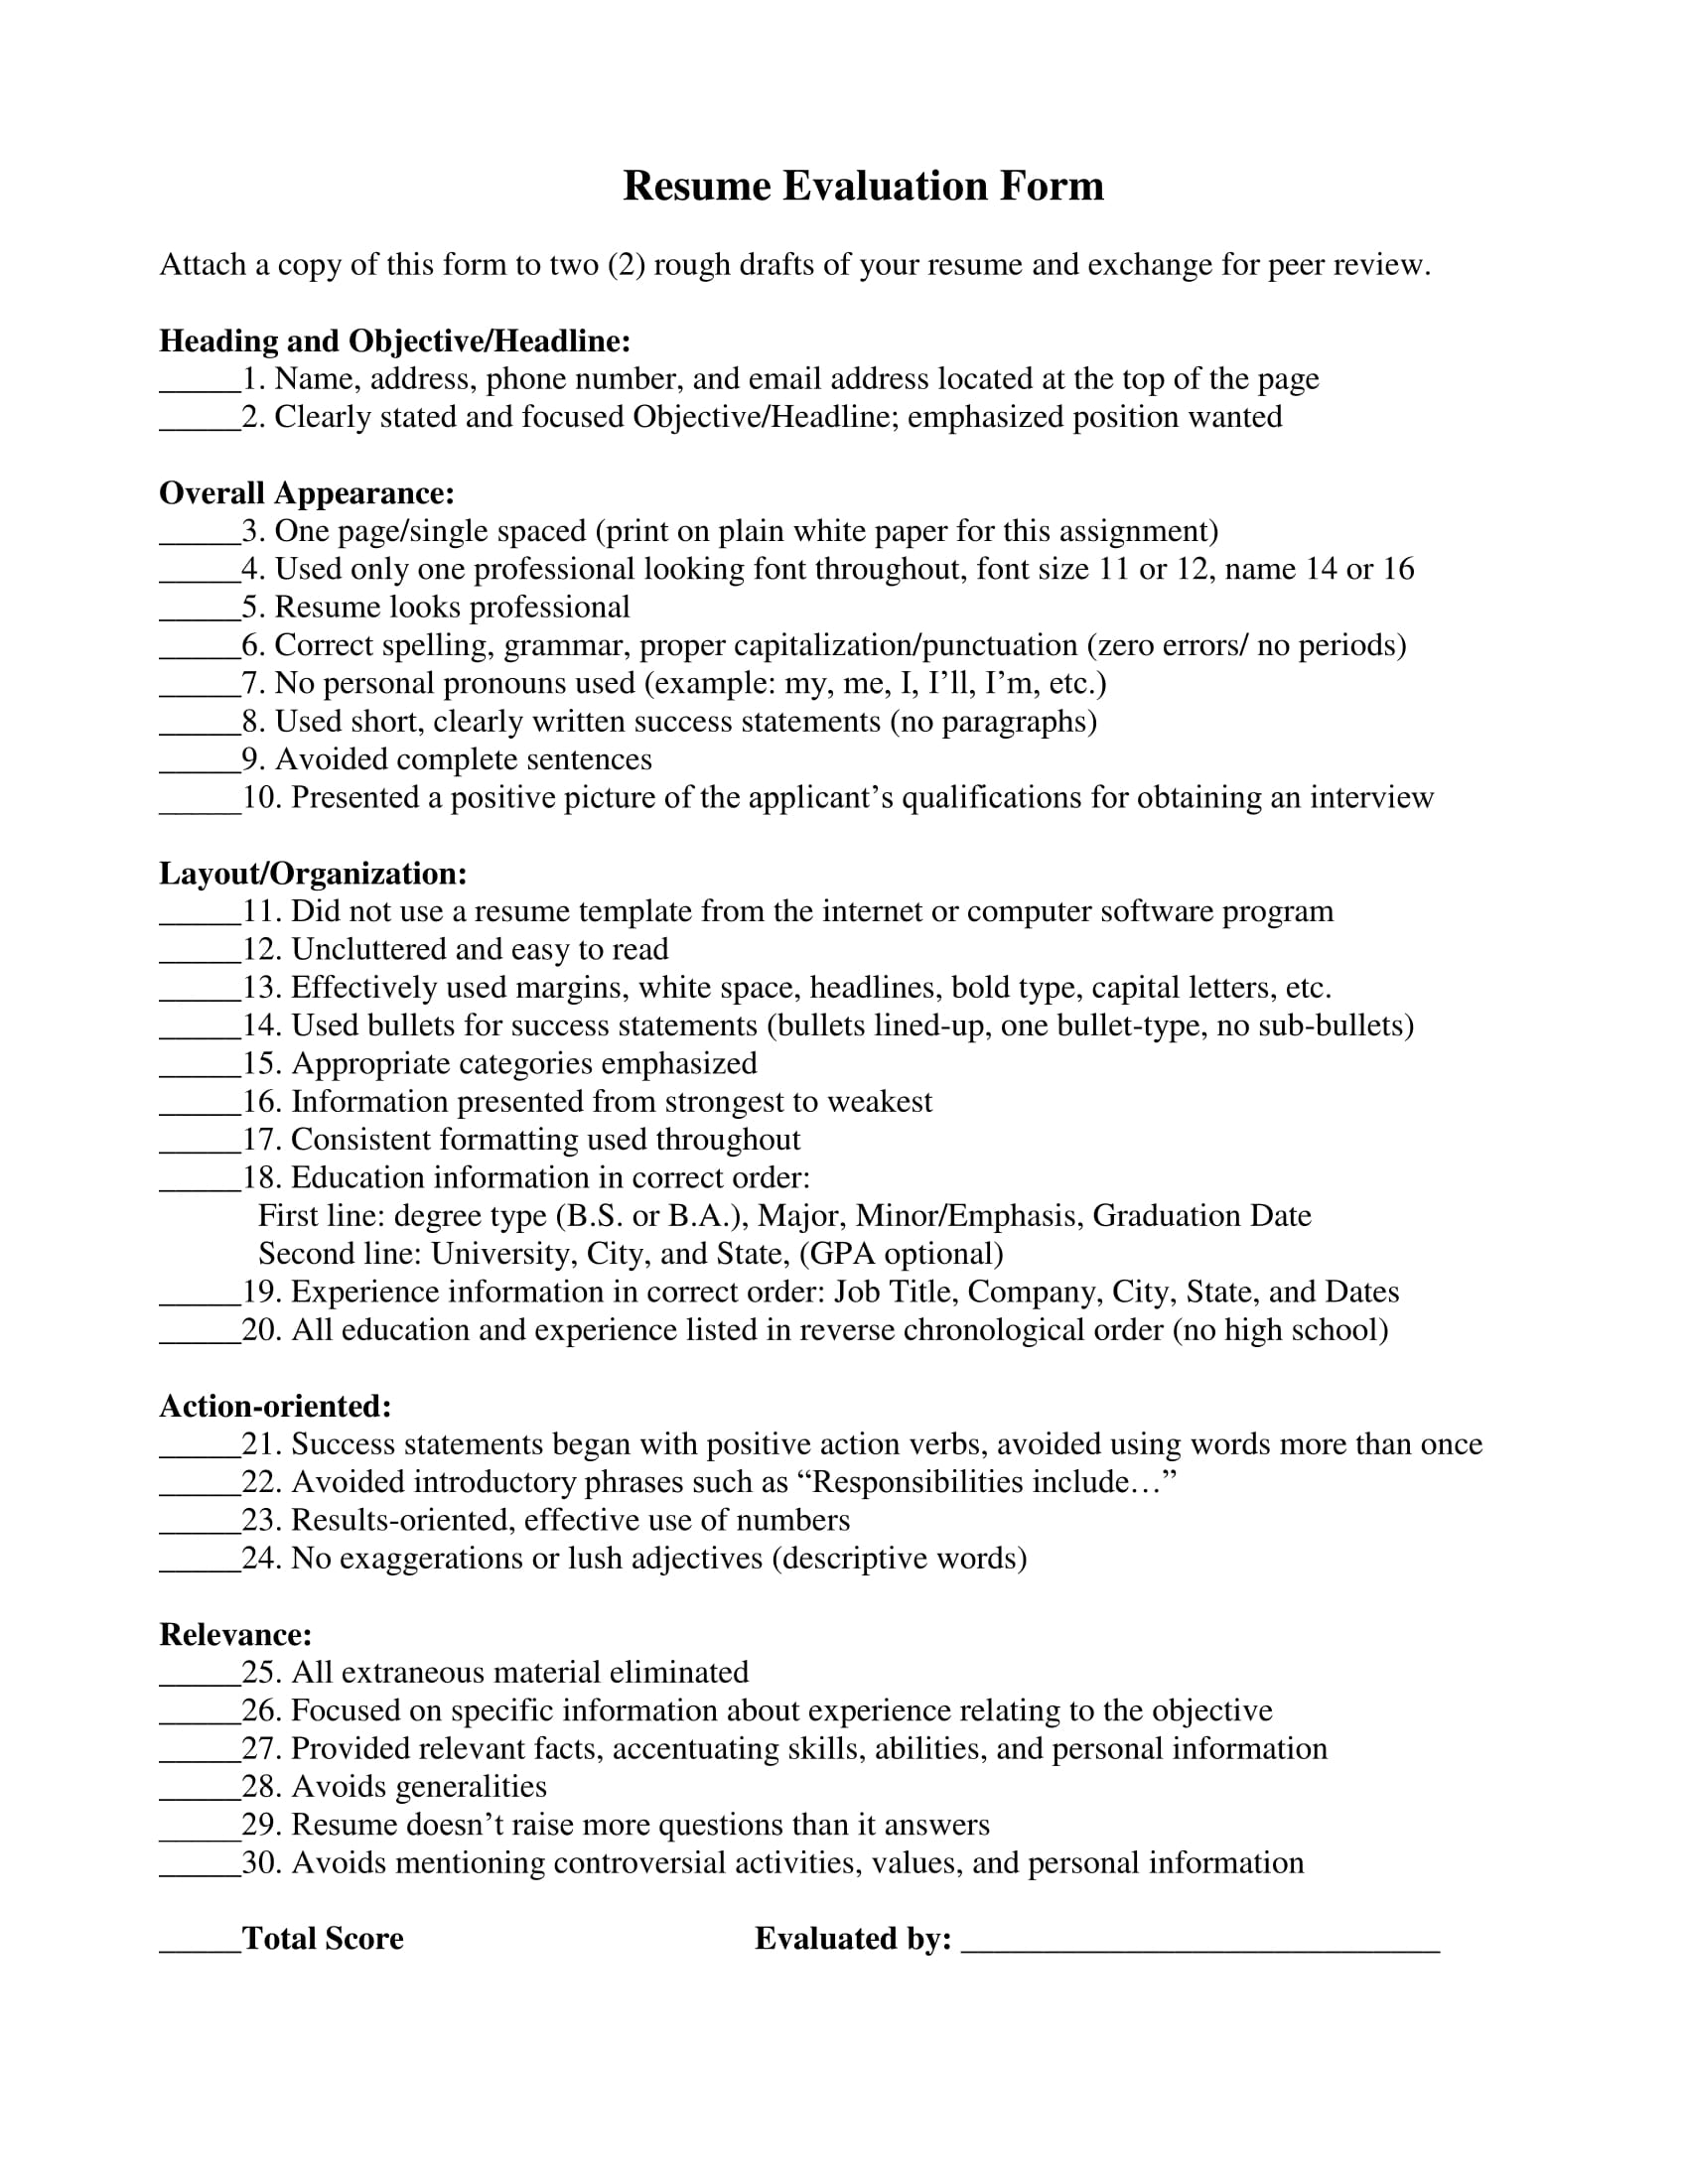 14 Resume Evaluation Forms Free Word Pdf Format Download